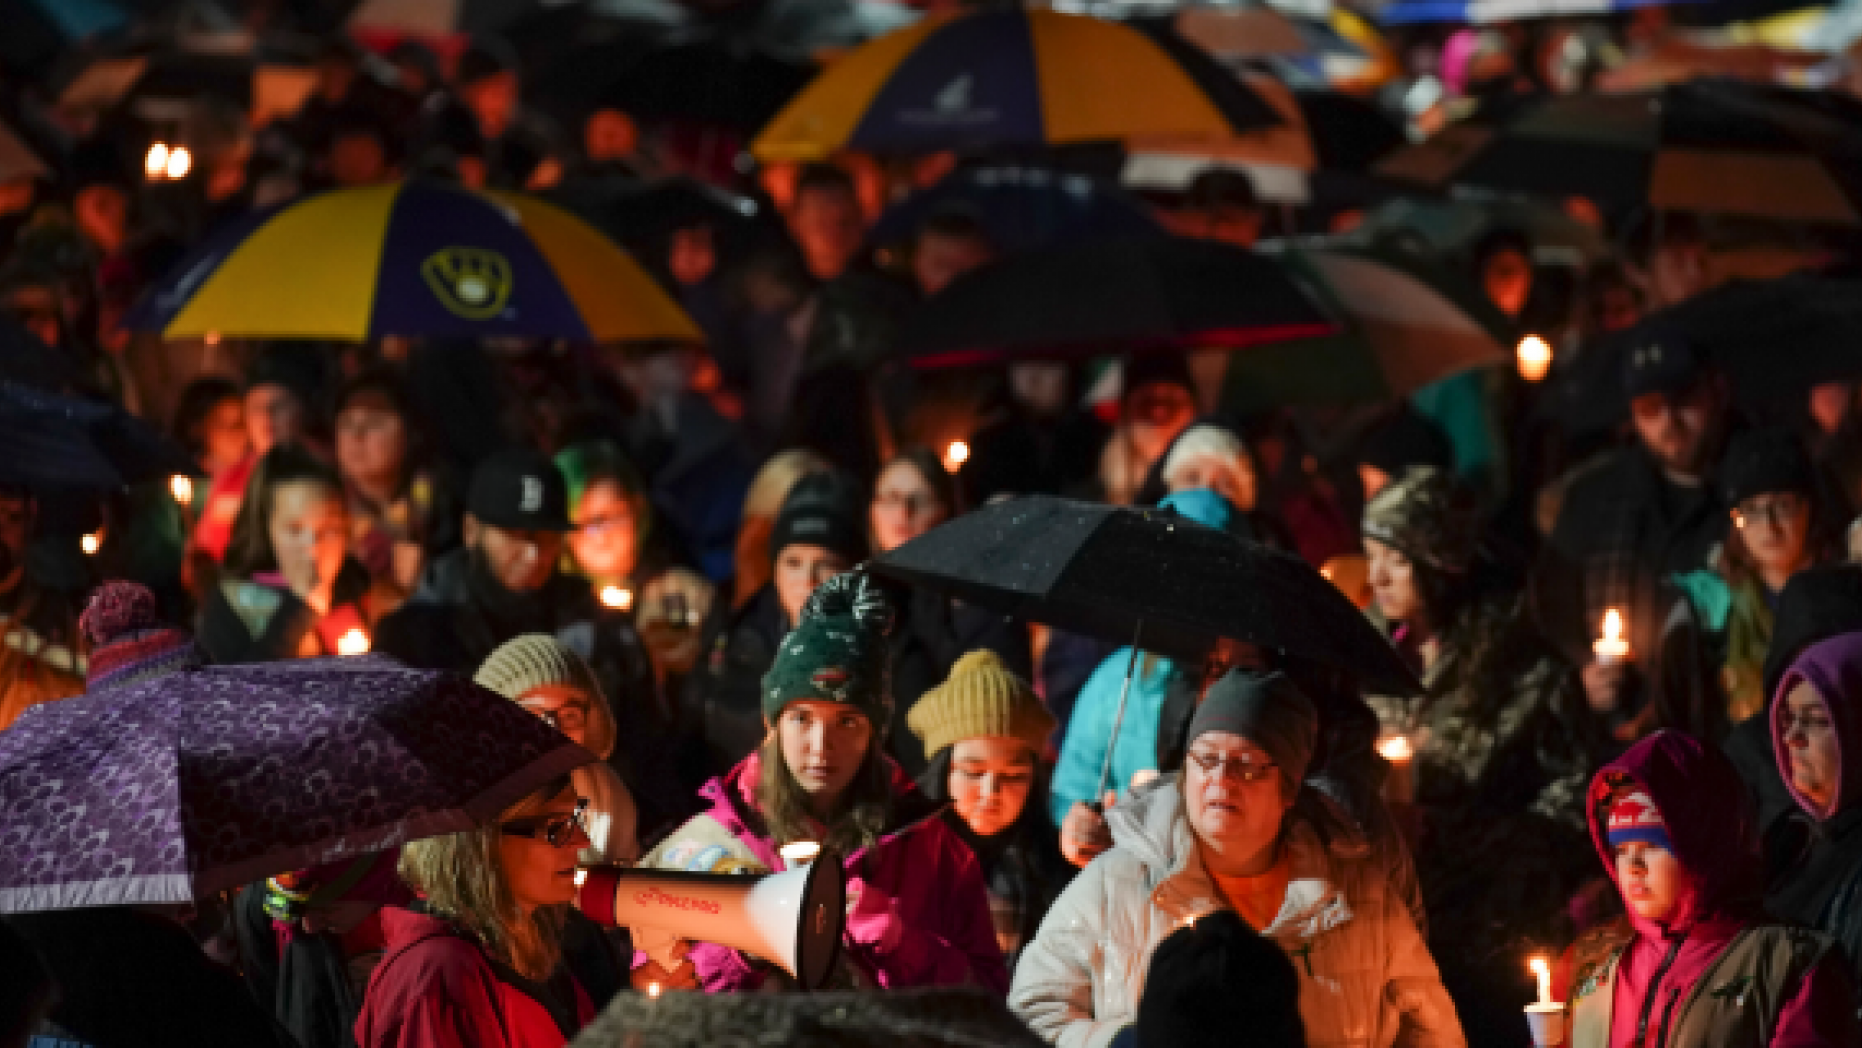 Serri Jasper, a member of the board of the girl and a consultant to the Halmstad Primary School, leads the candlelight vigilance program at Chippewa Falls School, Wis., Sunday night, November 4, 2018. The West Wisconsin community Sunday grieves deaths of three girl detectors and a parent gathering garbage on Saturday along a rural motorway when police say a truck has jumped out of the way and hit them before accelerating. The 21-year-old driver, Colten Treu of Chippewa Falls, rushed but later surrendered. He will be accused of four homicide charges, the Sgt Police Hallie Lake. Daniel Sokup said. (Jeff Wheeler / Star Tribune via AP)